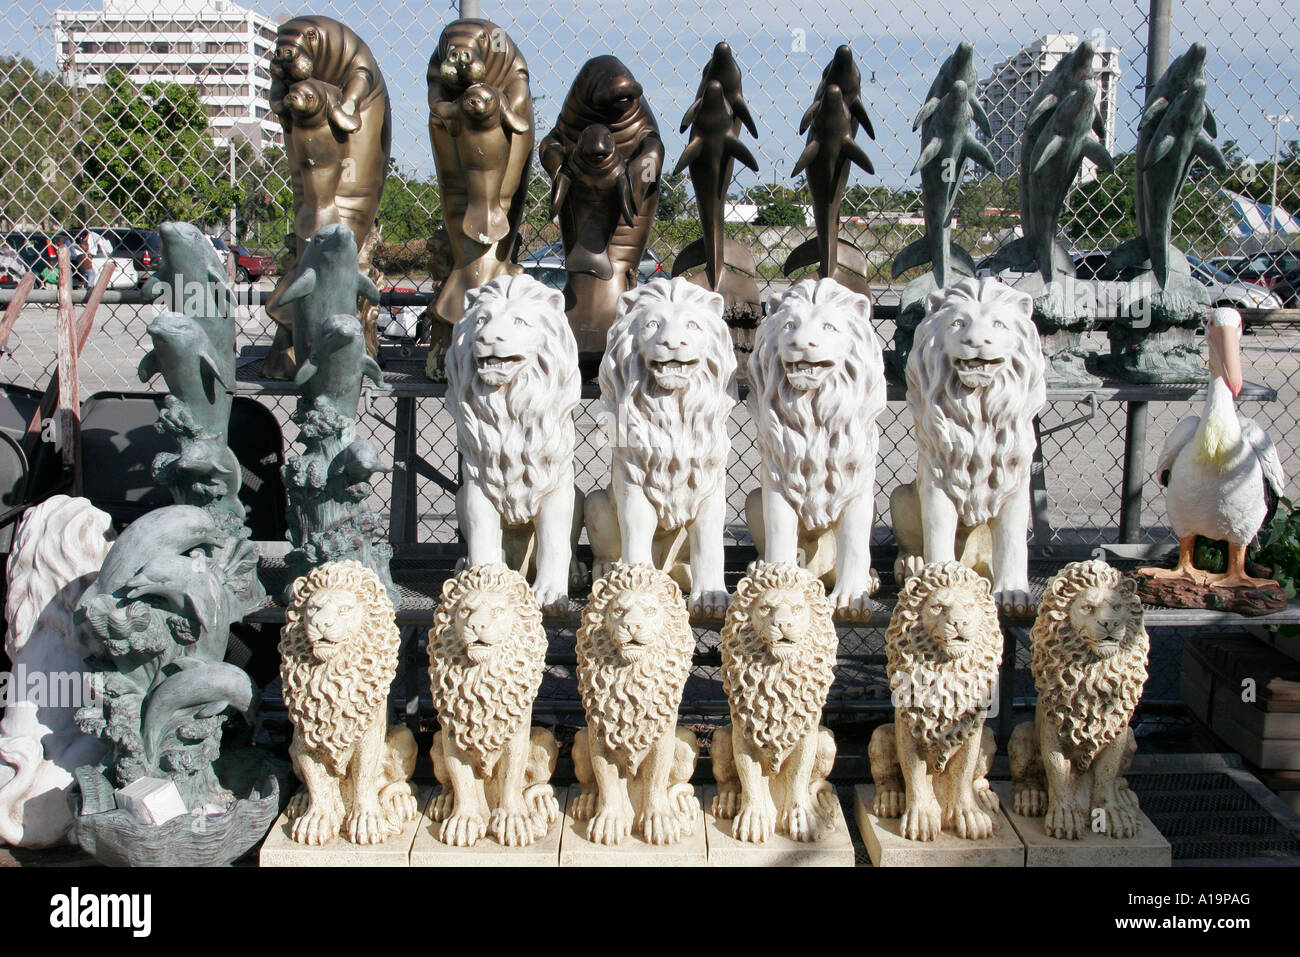 Delightful Miami Florida Biscayne Boulevard Kmart Garden Statues For Sale Lion Dolphin